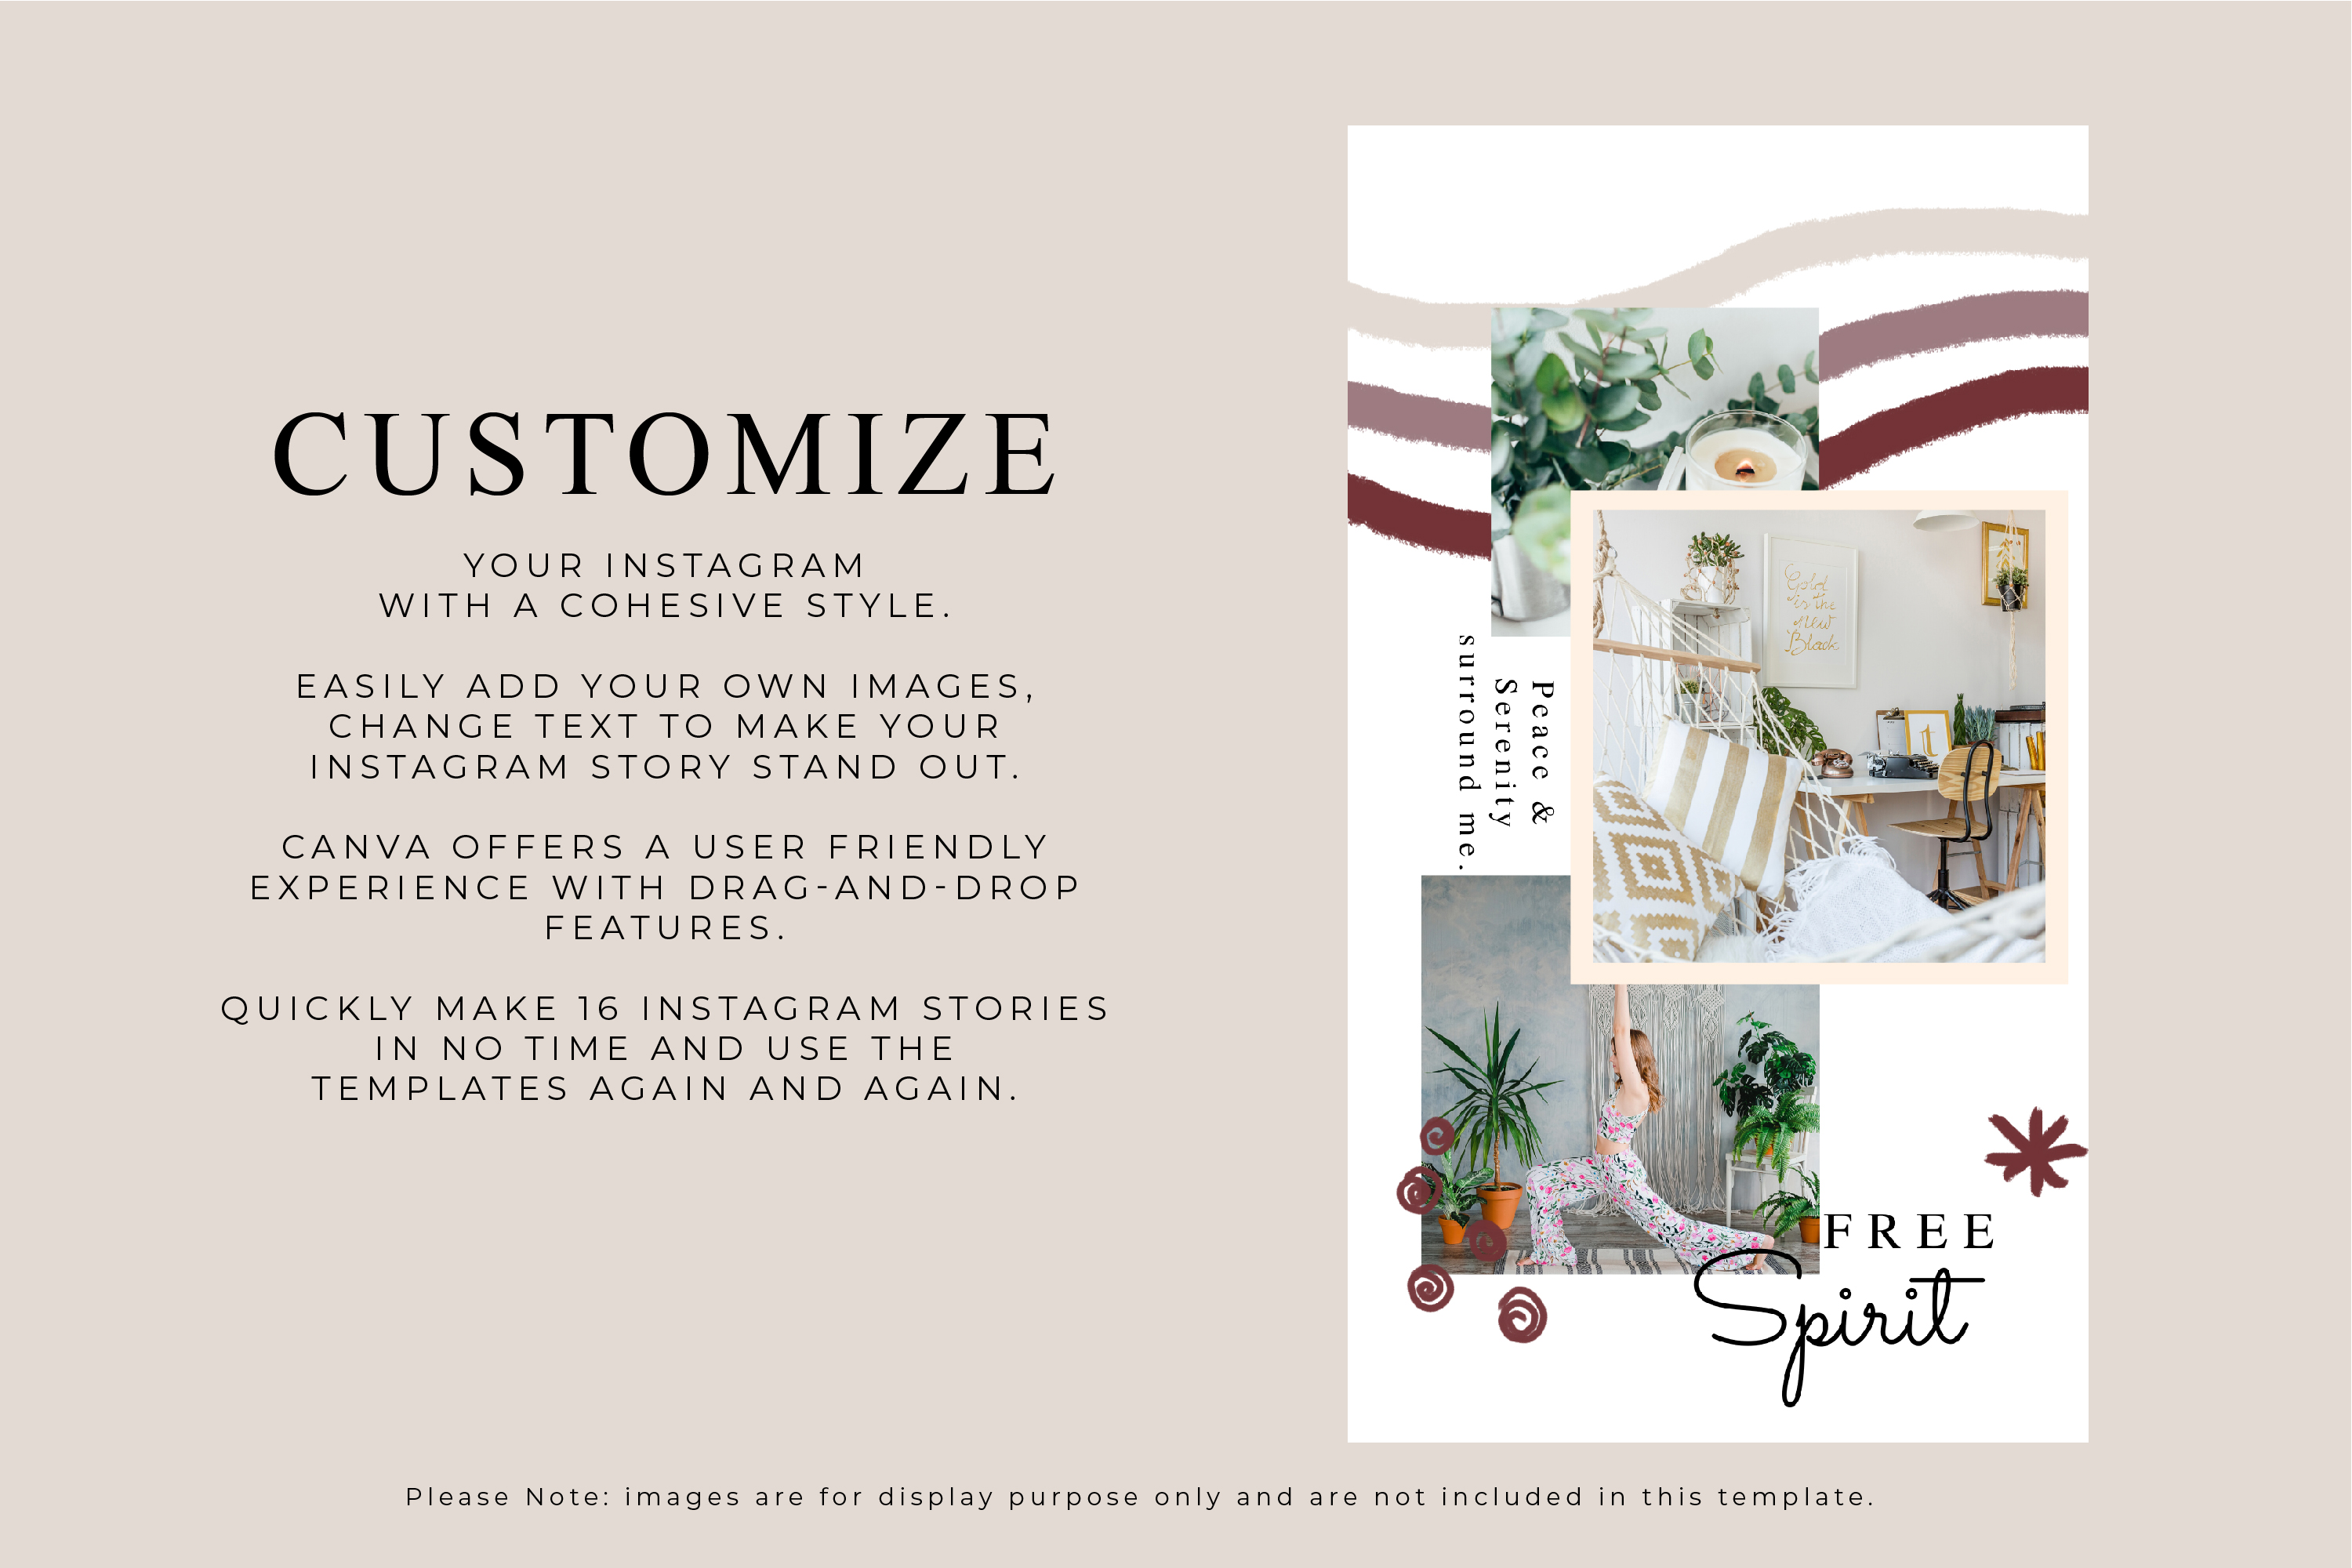 Instagram Story Canva Template - Free Spirit example image 3